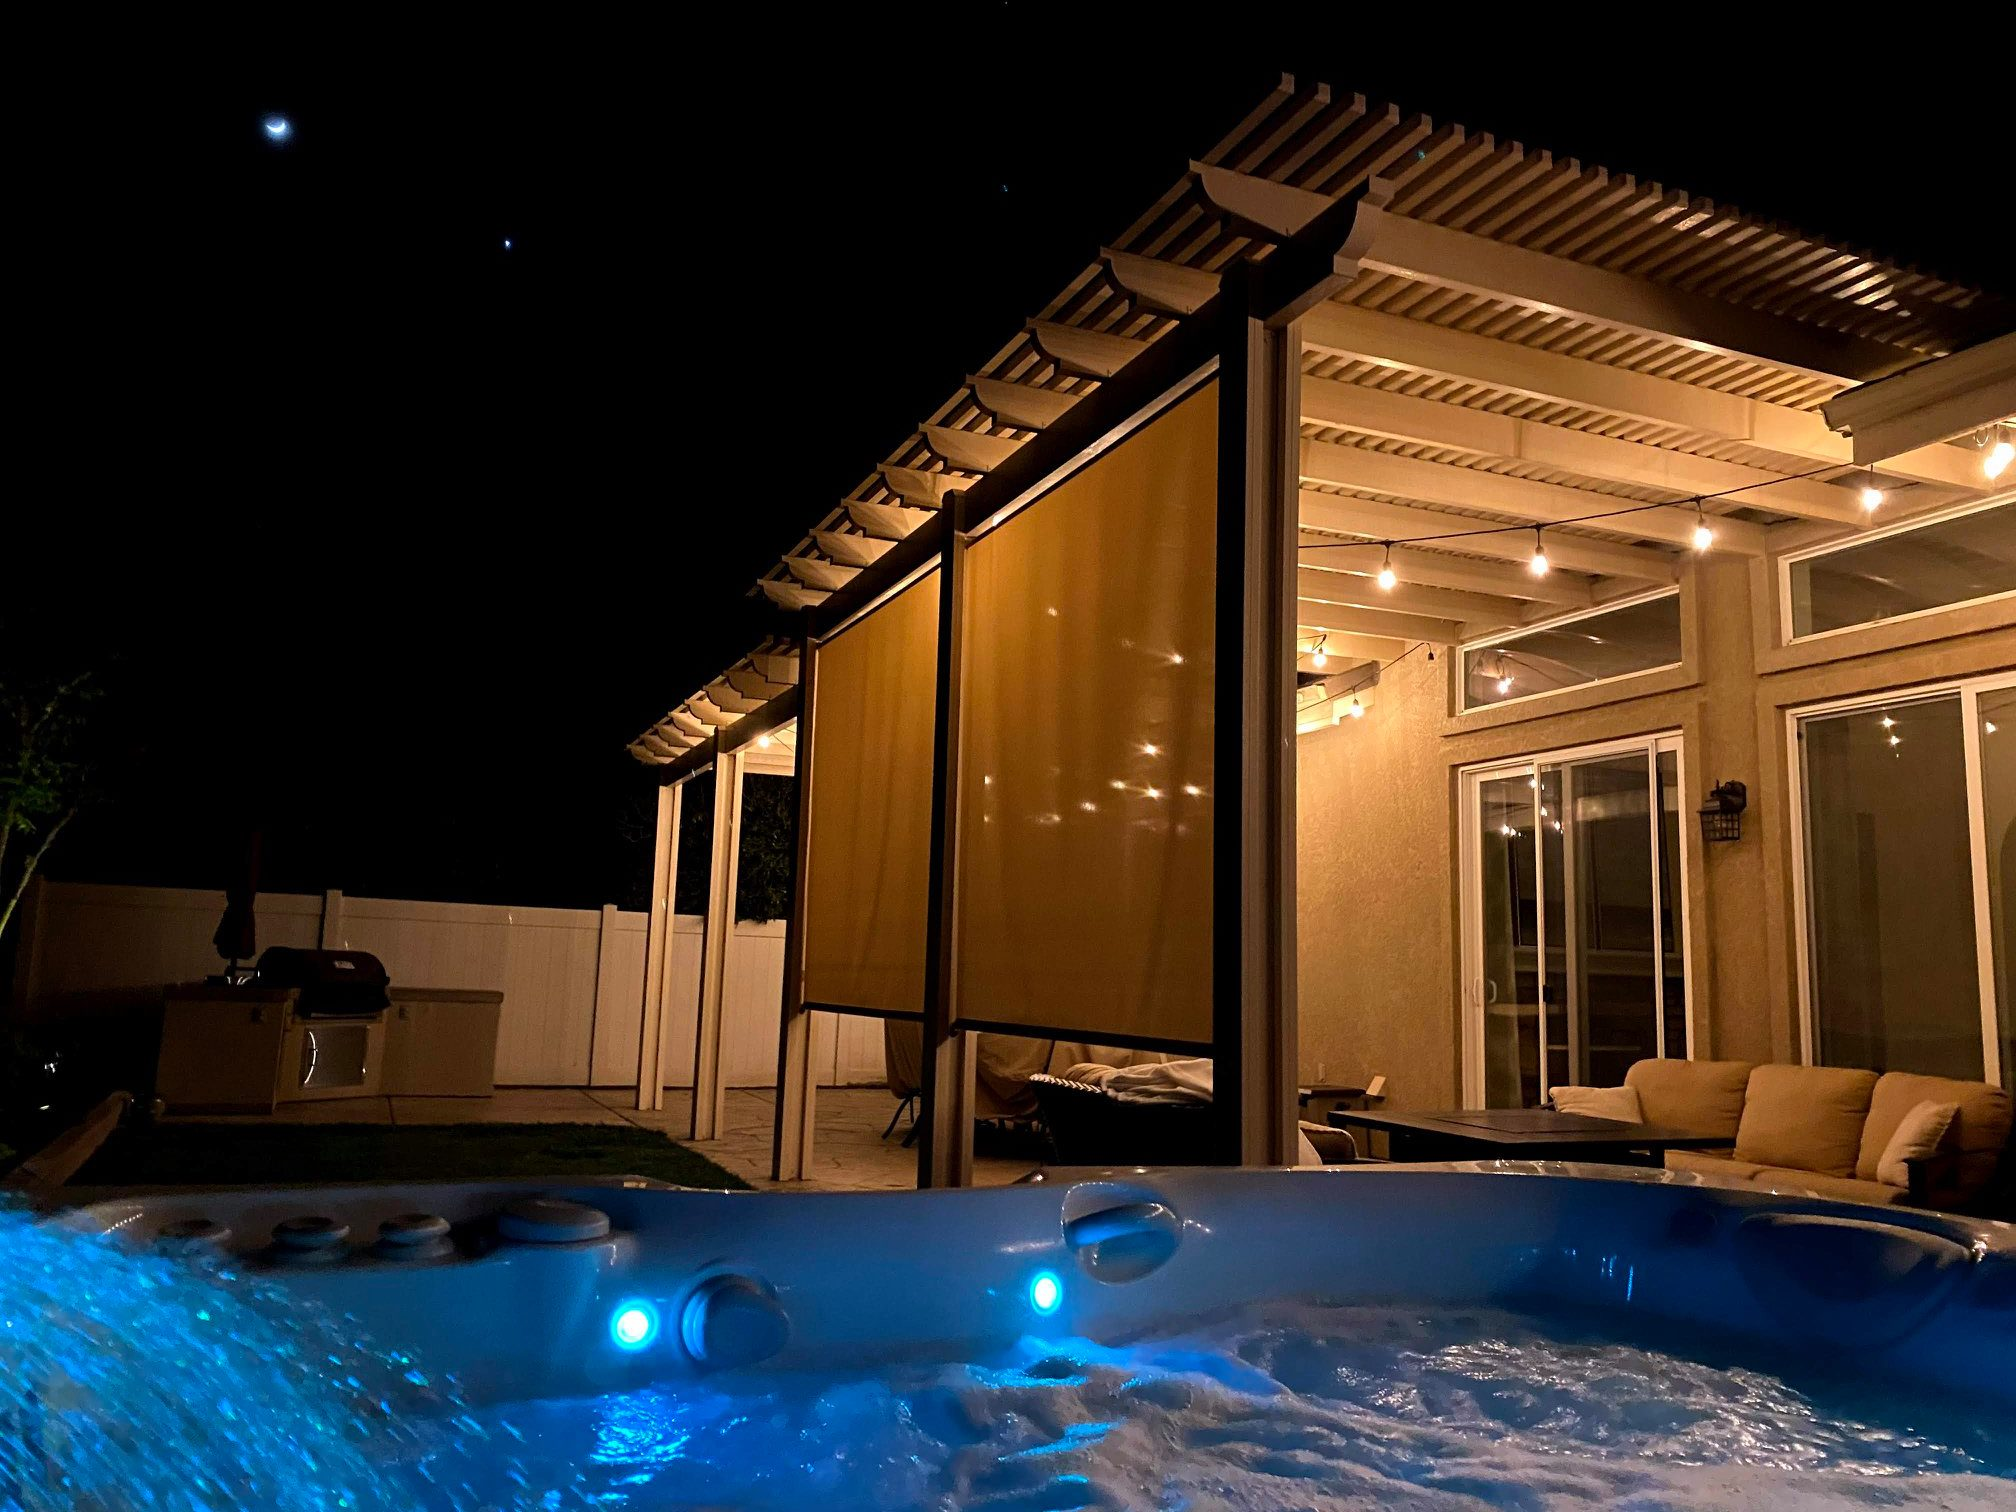 caldera hot tub in backyard at night in Los Angeles, CA